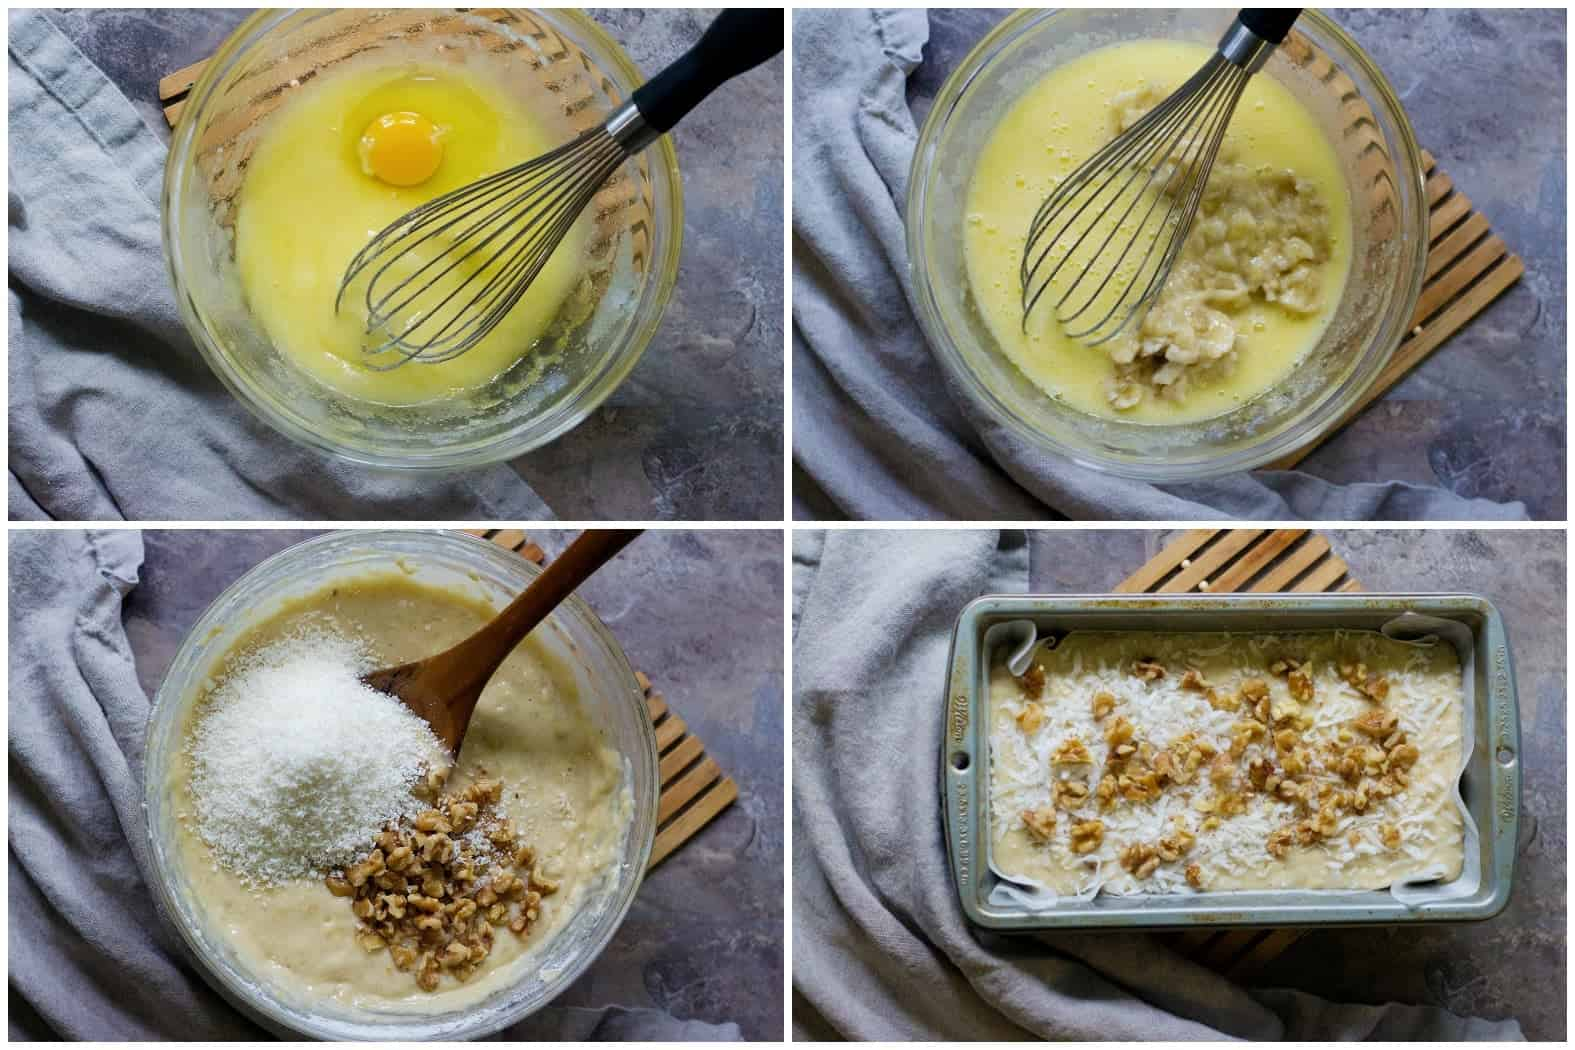 To make coconut banana bread mix sugar and oil then add eggs, bananas and dry ingredients. Mix in coconut and walnuts and transfer to the loaf pan.